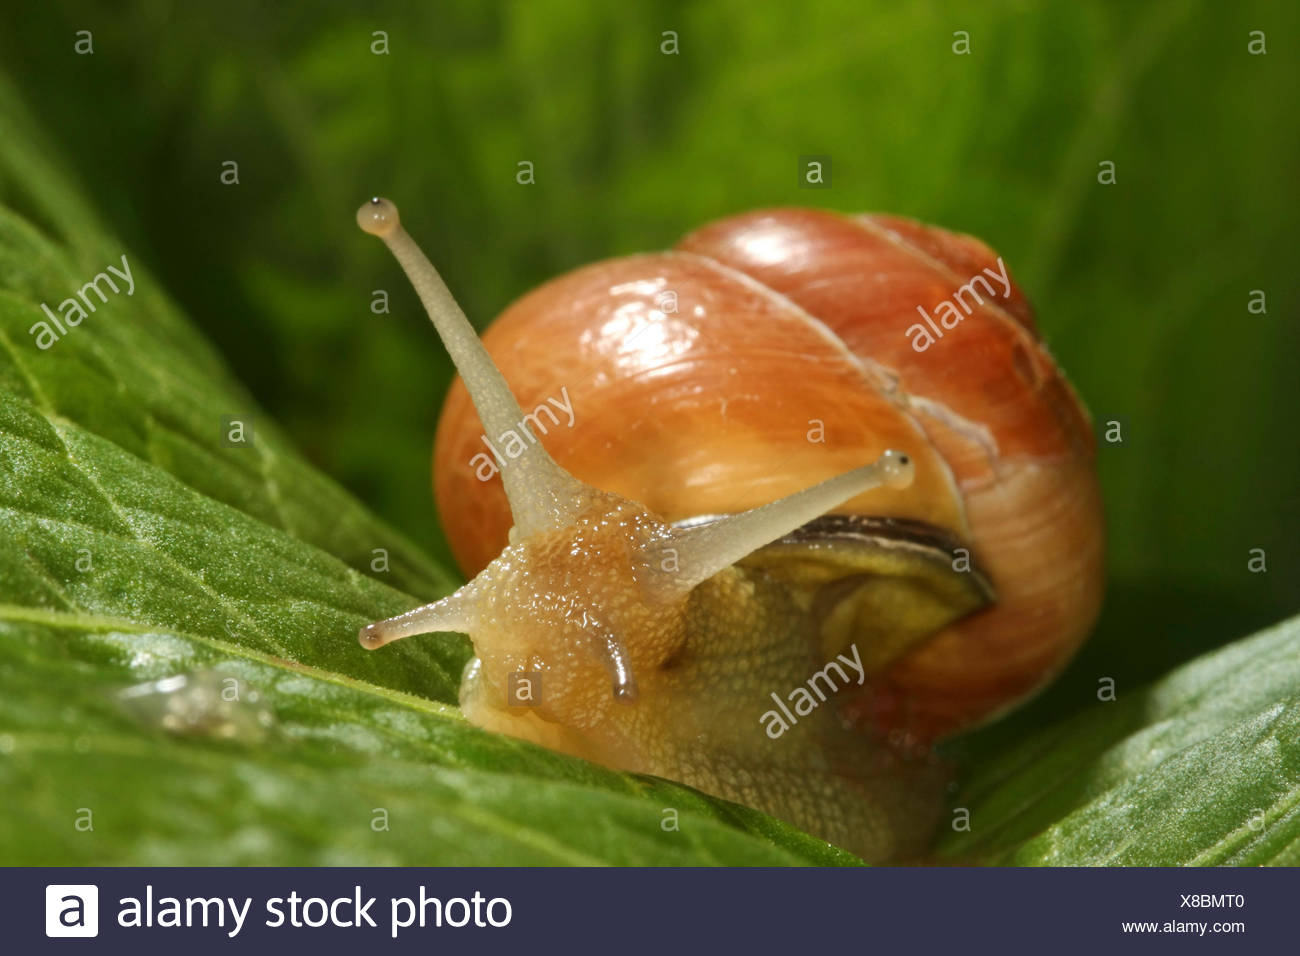 brown-lipped snail, grove snail, grovesnail, English garden snail, larger banded snail, banded wood snail (Cepaea nemoralis), banded snail on a leaf, Germany - Stock Image